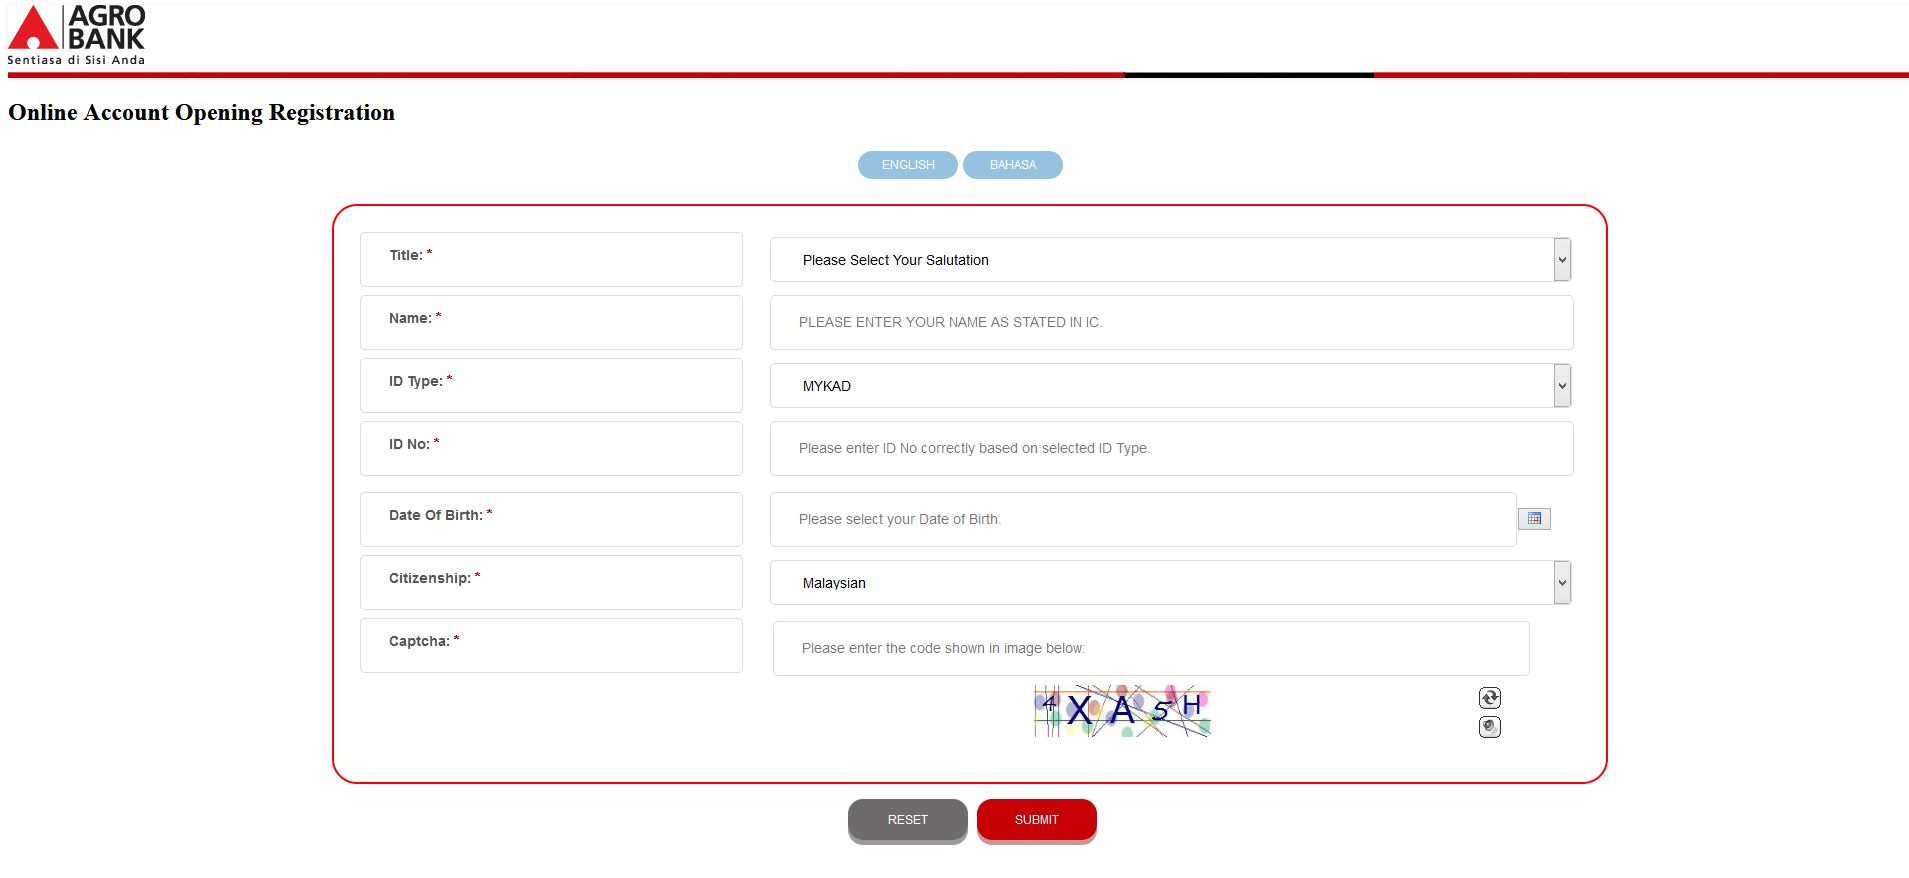 How to Open AgroBank Account using Internet Banking Online